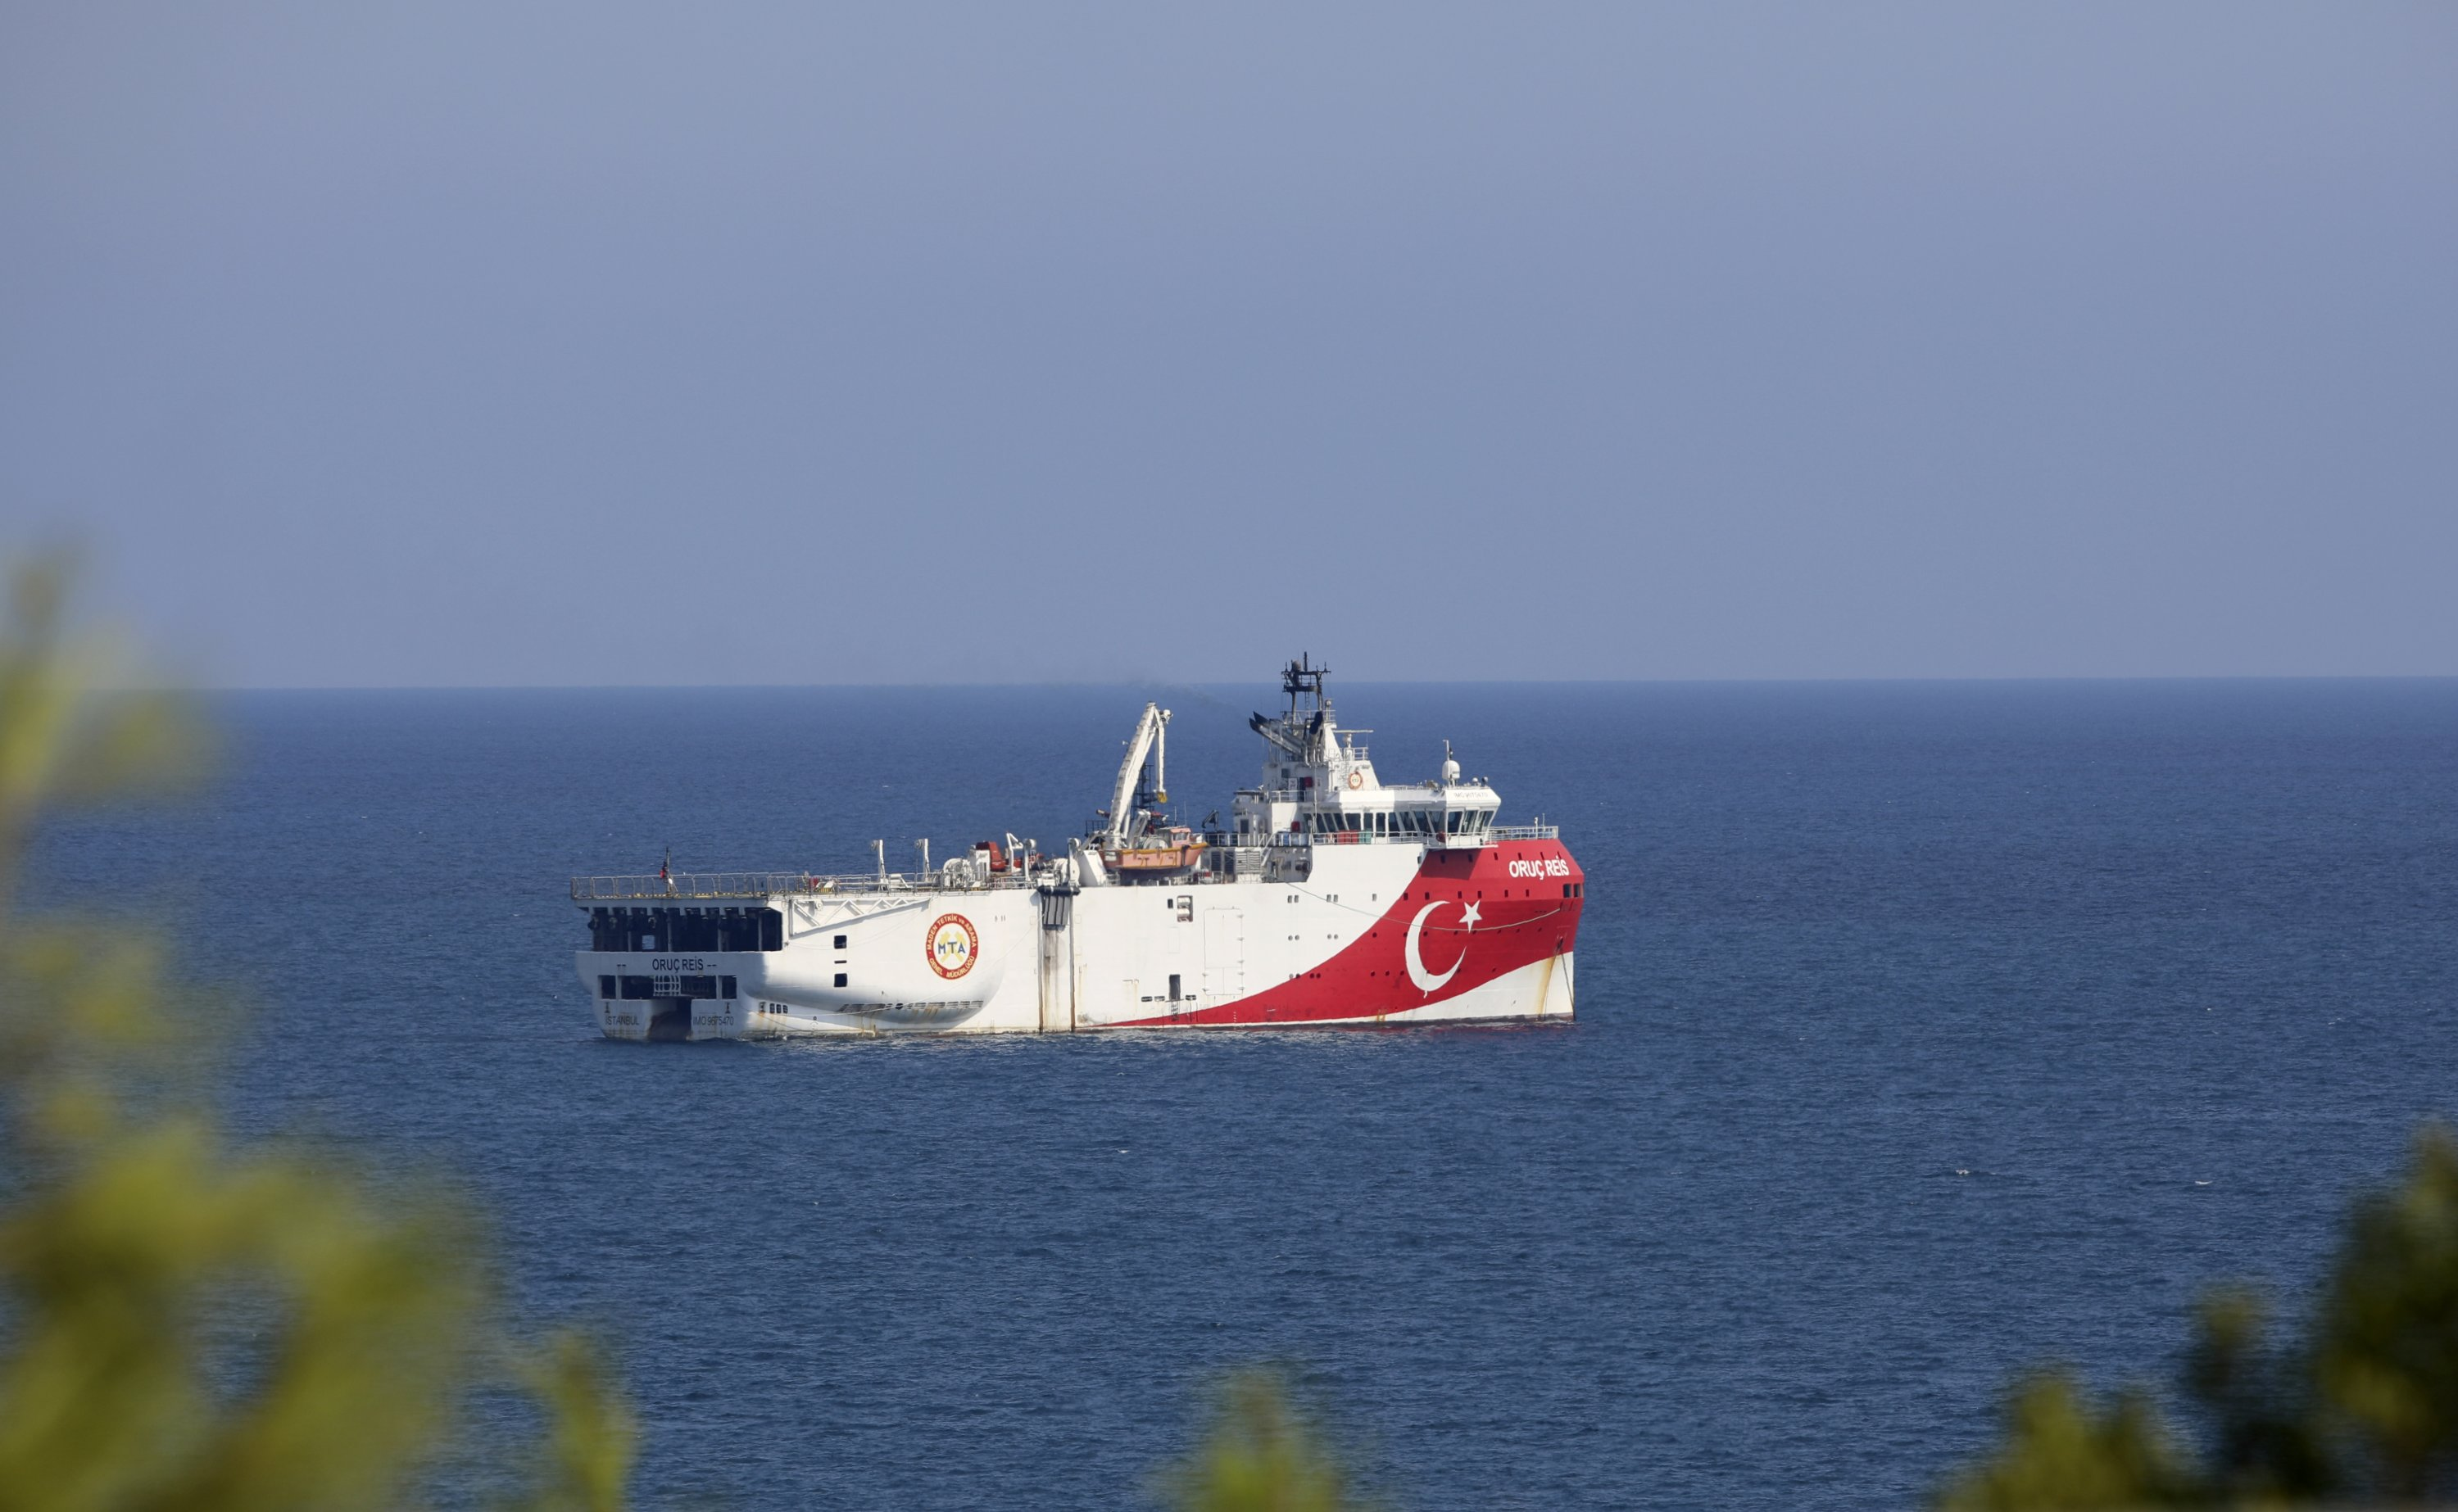 Turkey, Egypt and new balance of power in East Med